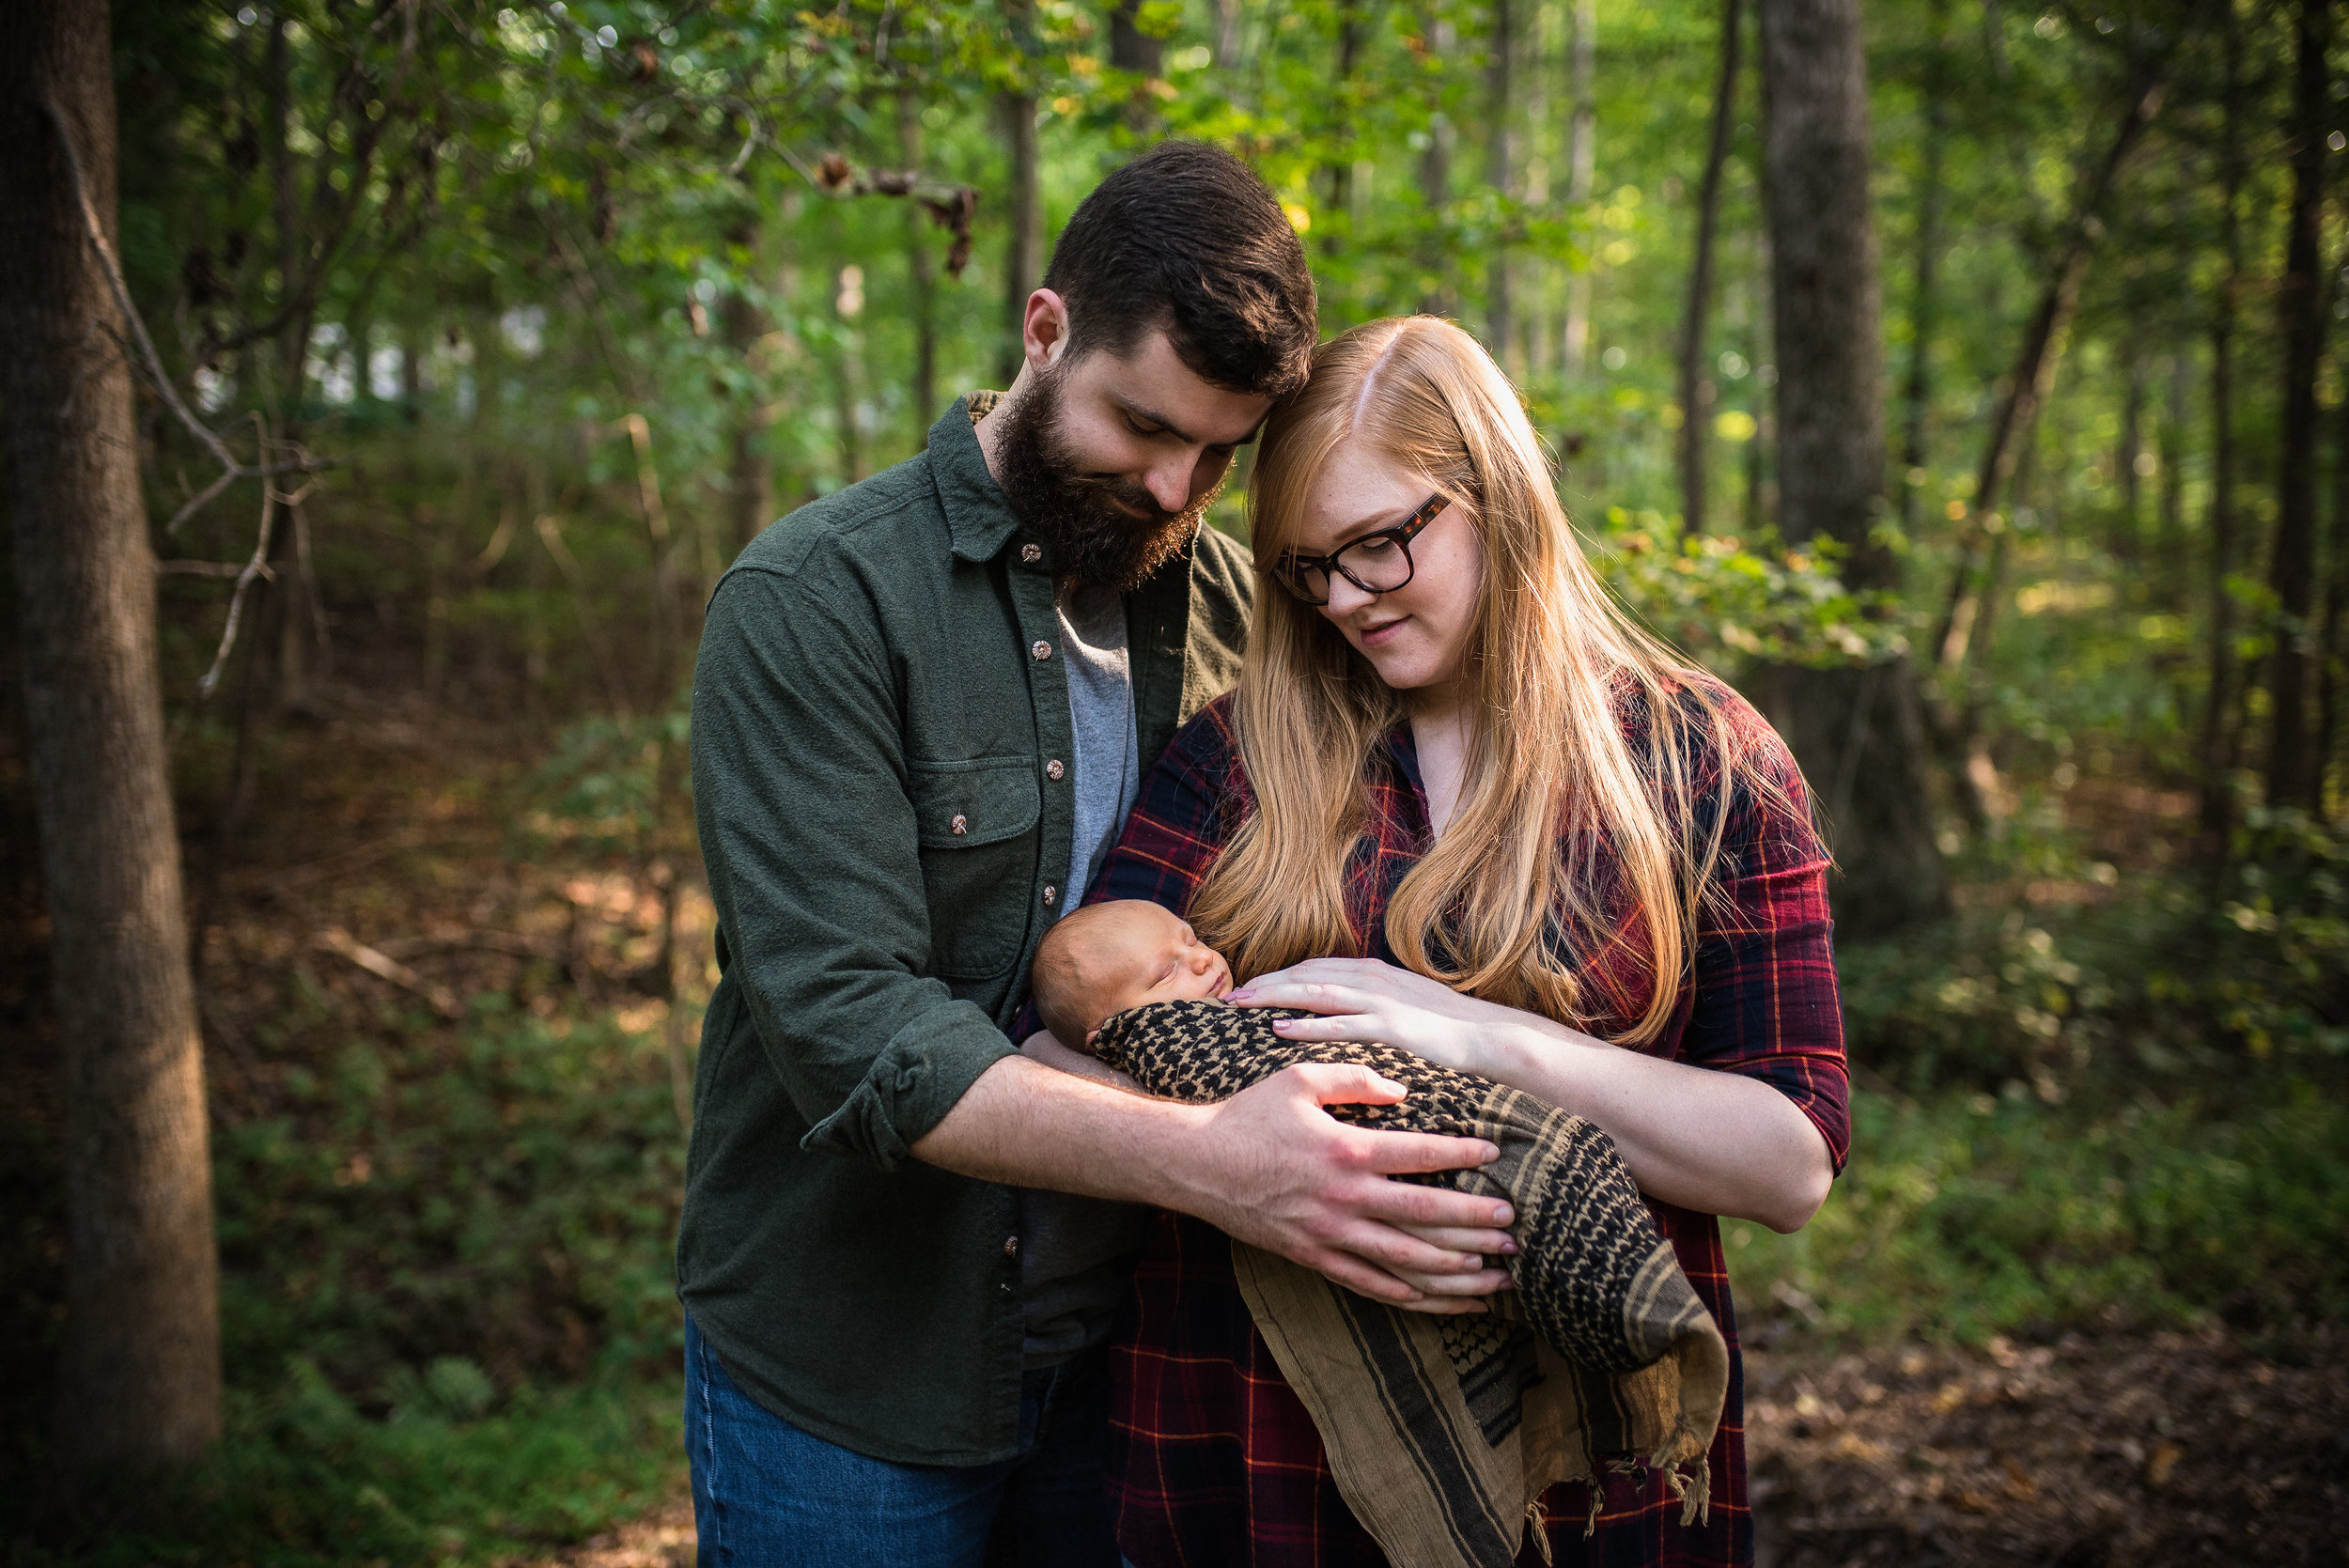 Raleigh Family Photographer - Newborn Lifestyle Session